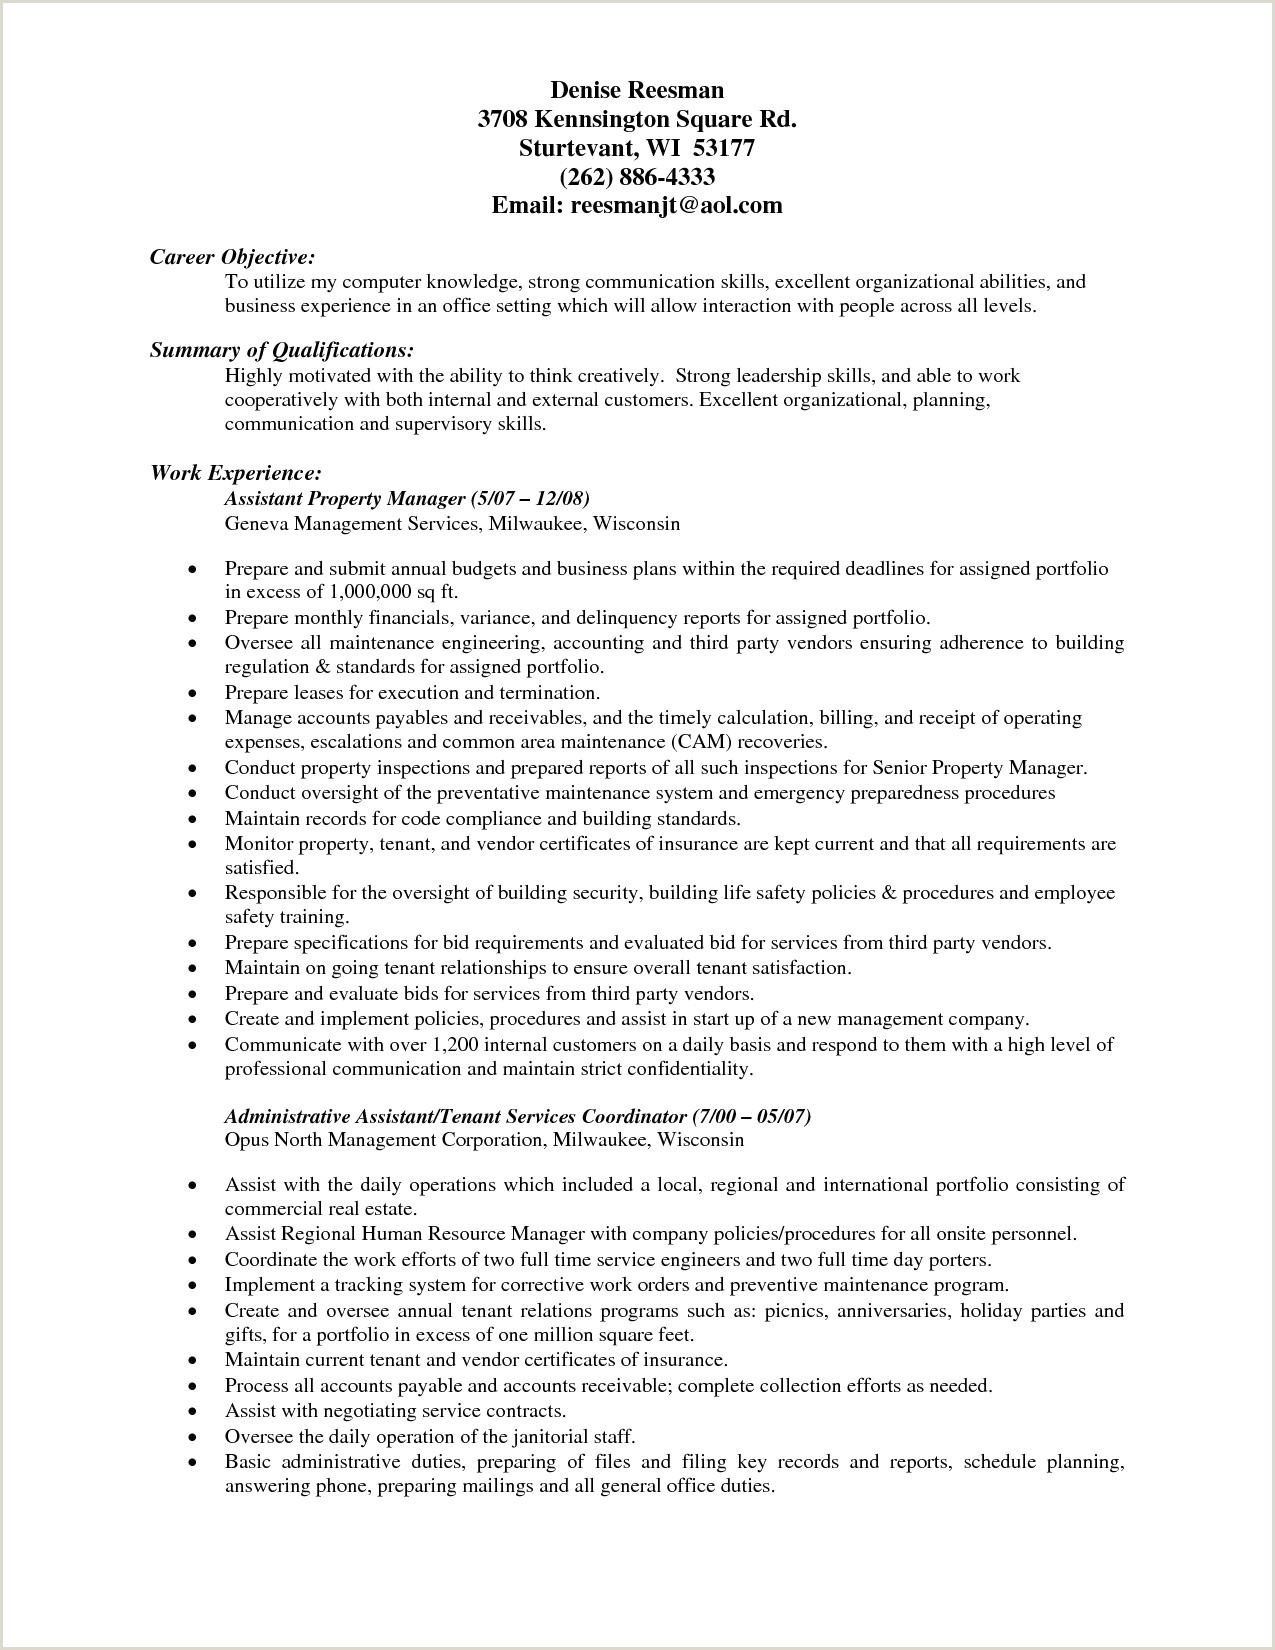 Property Manager Resume Templates Beautiful 73 Cool Resume